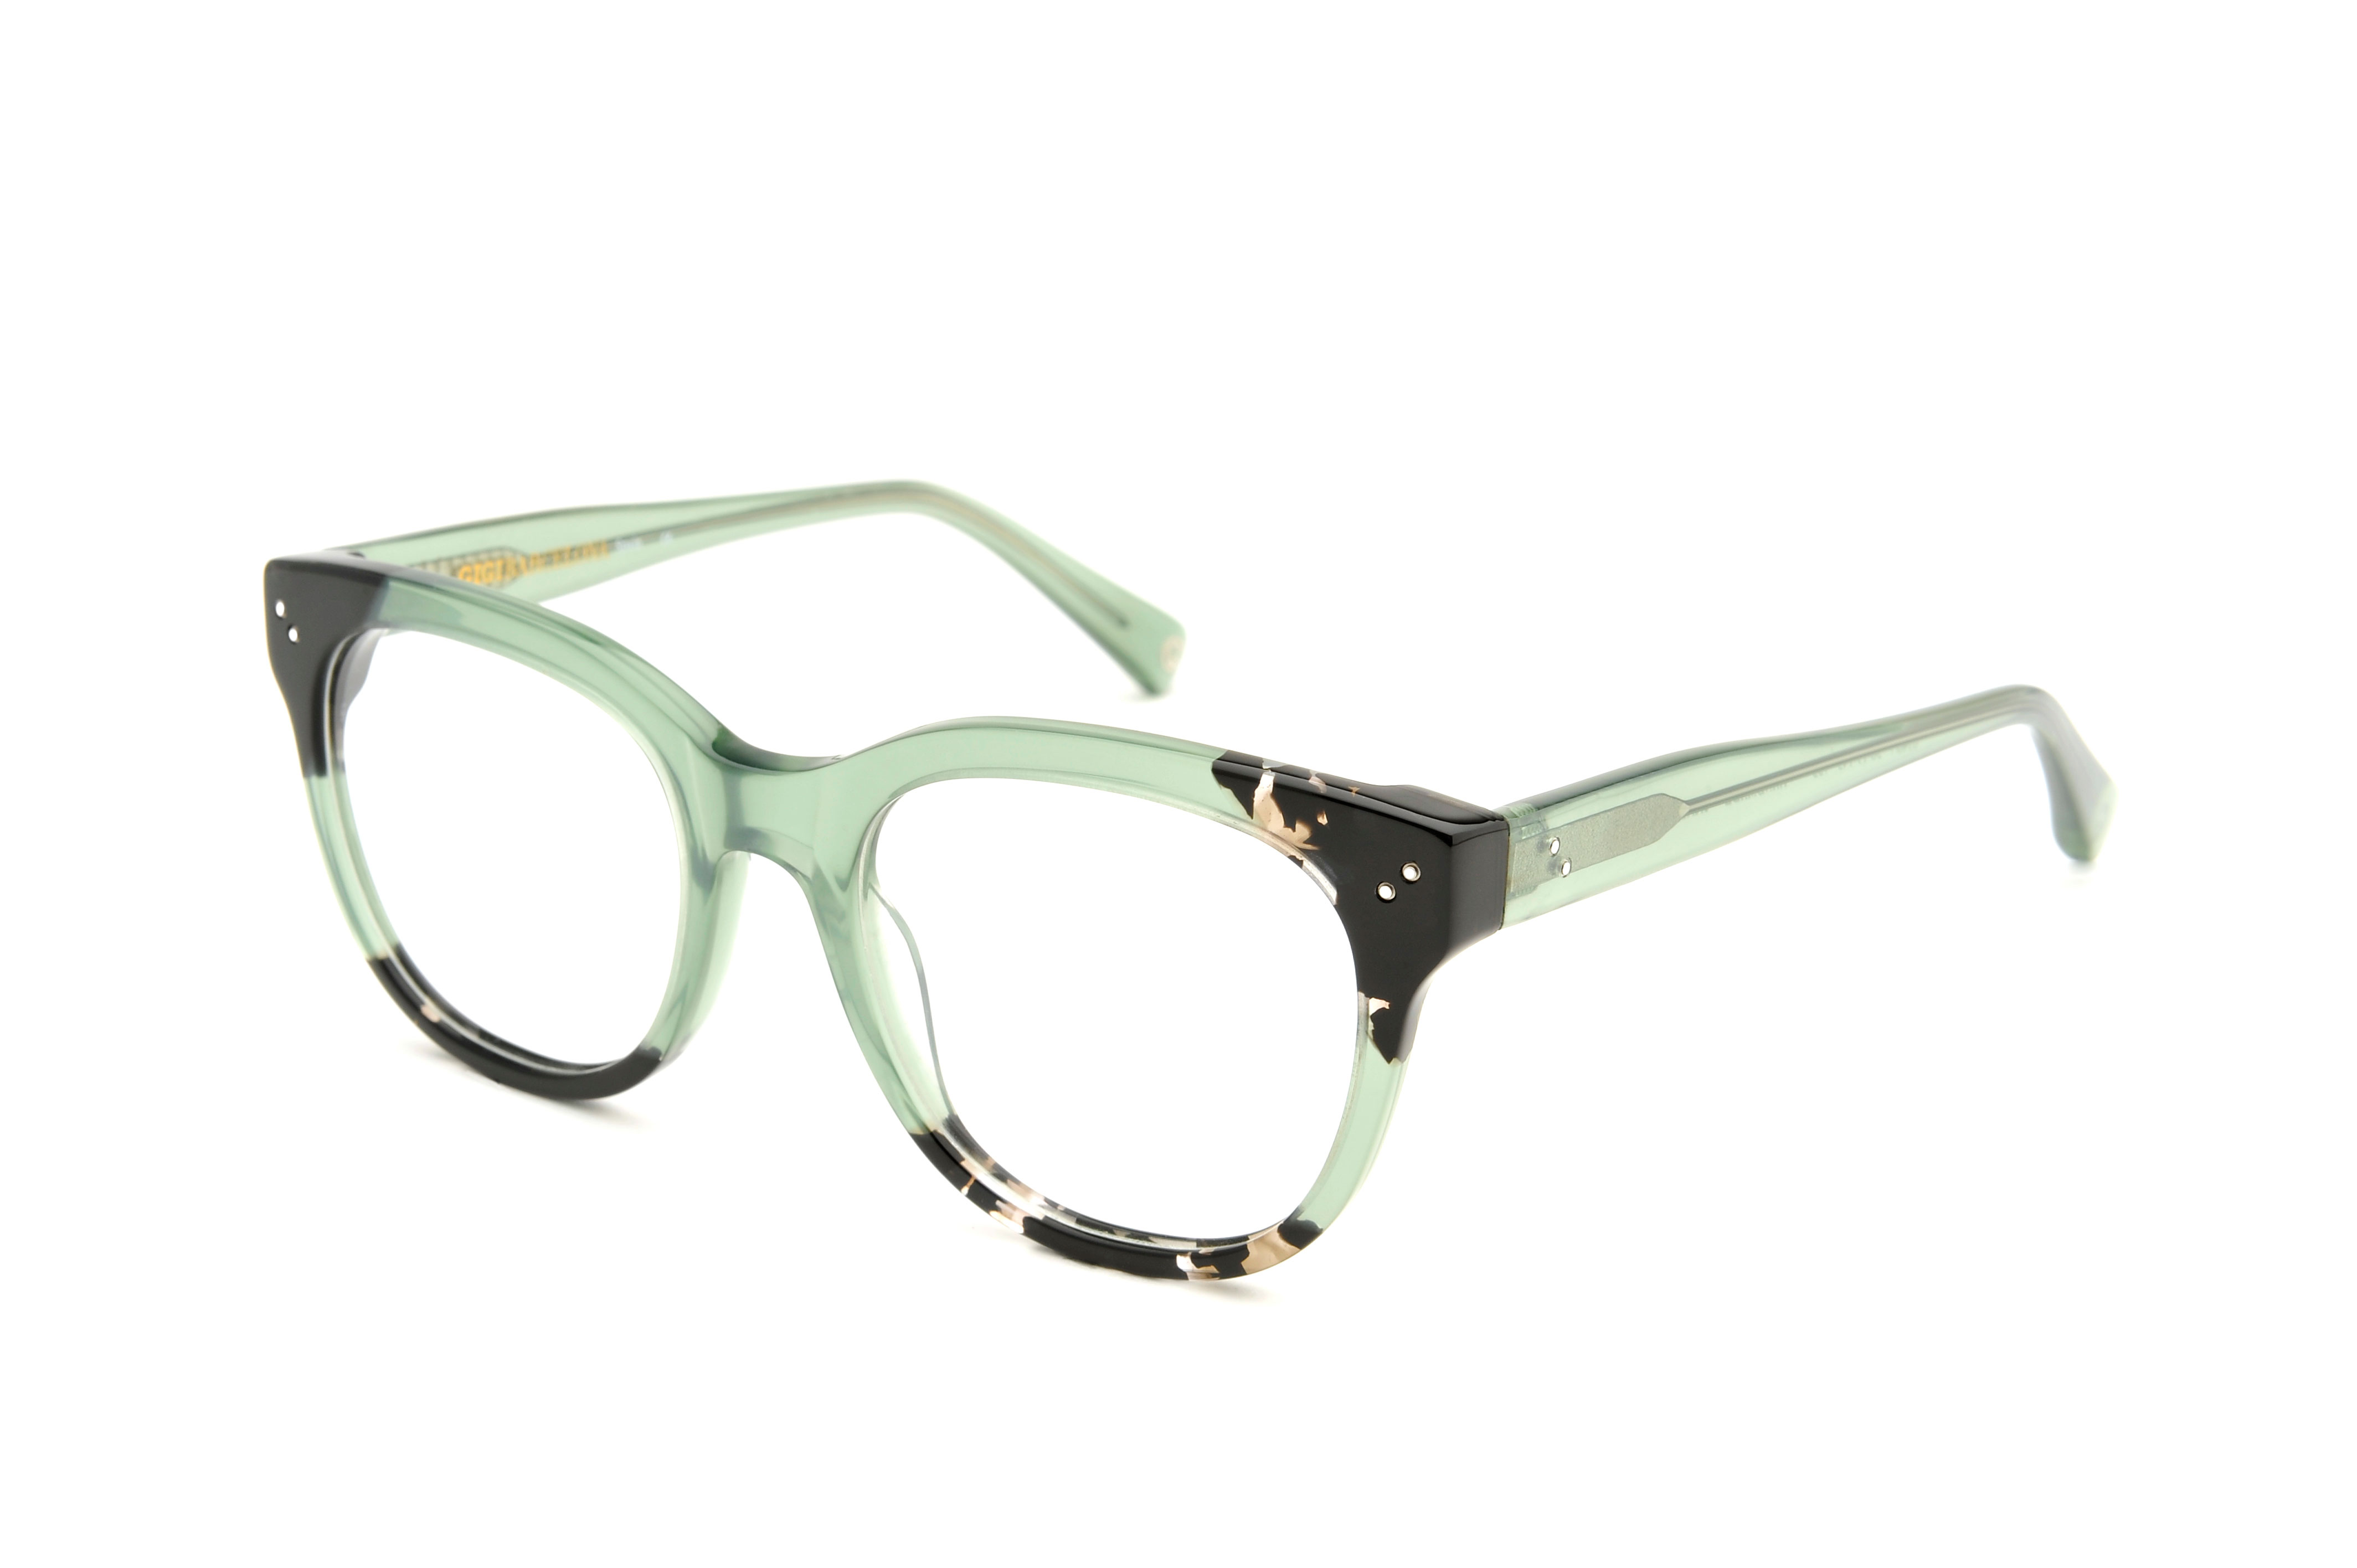 Janis acetate squared green sunglasses by GIGI Studios